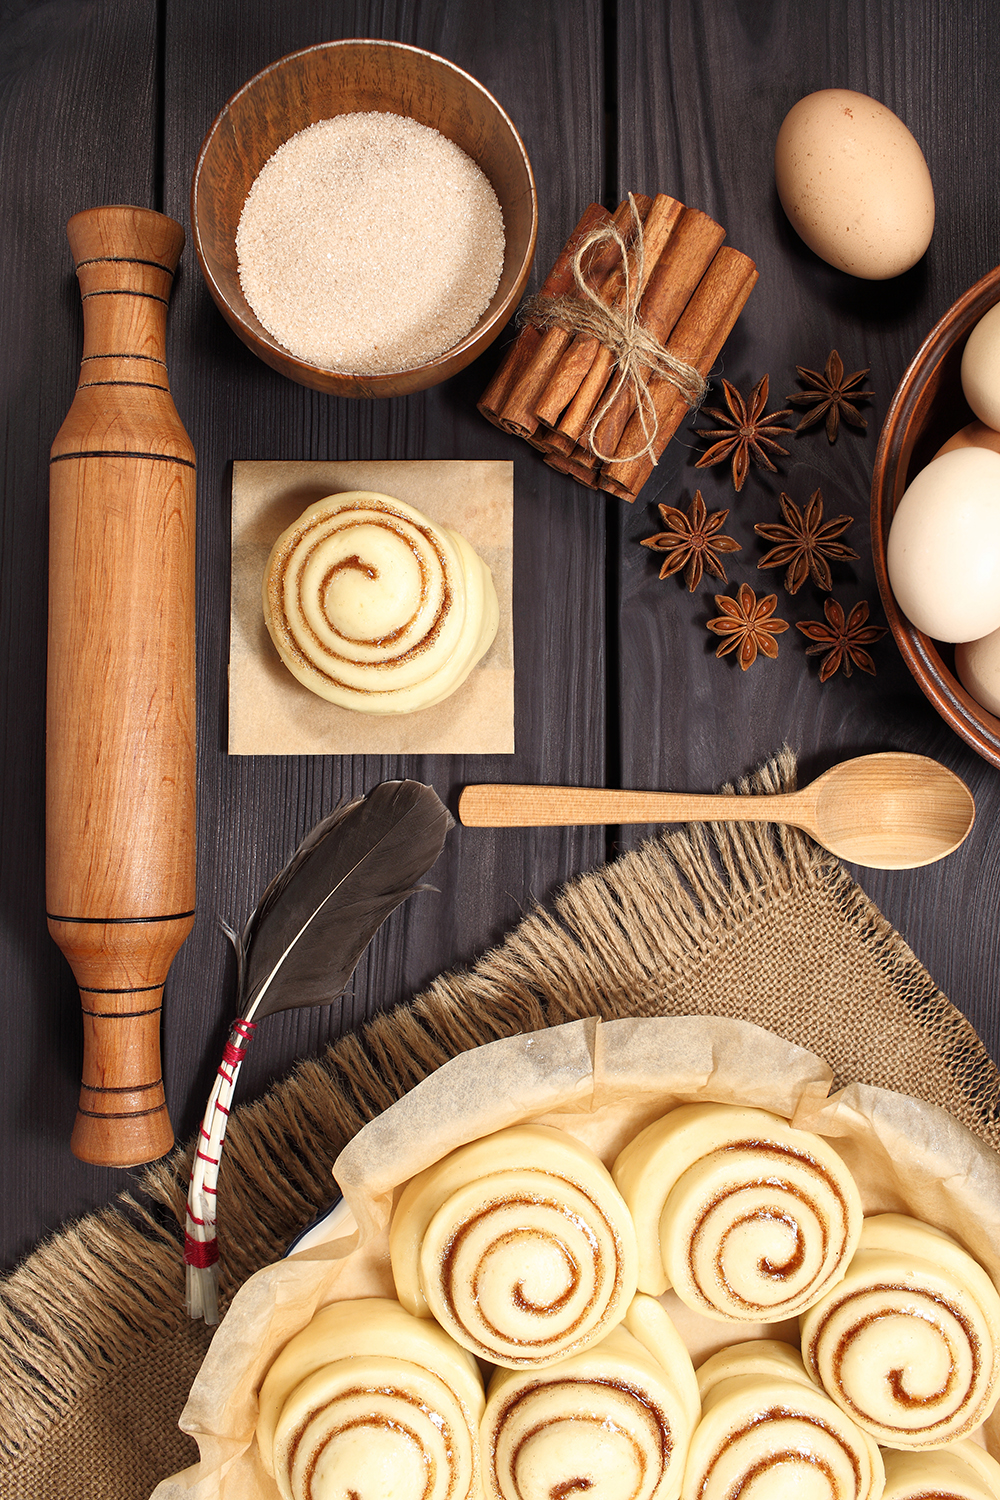 Set of 11 photos - raw buns: cinnamon rolls prepared for baking on a background of rustic table example image 17